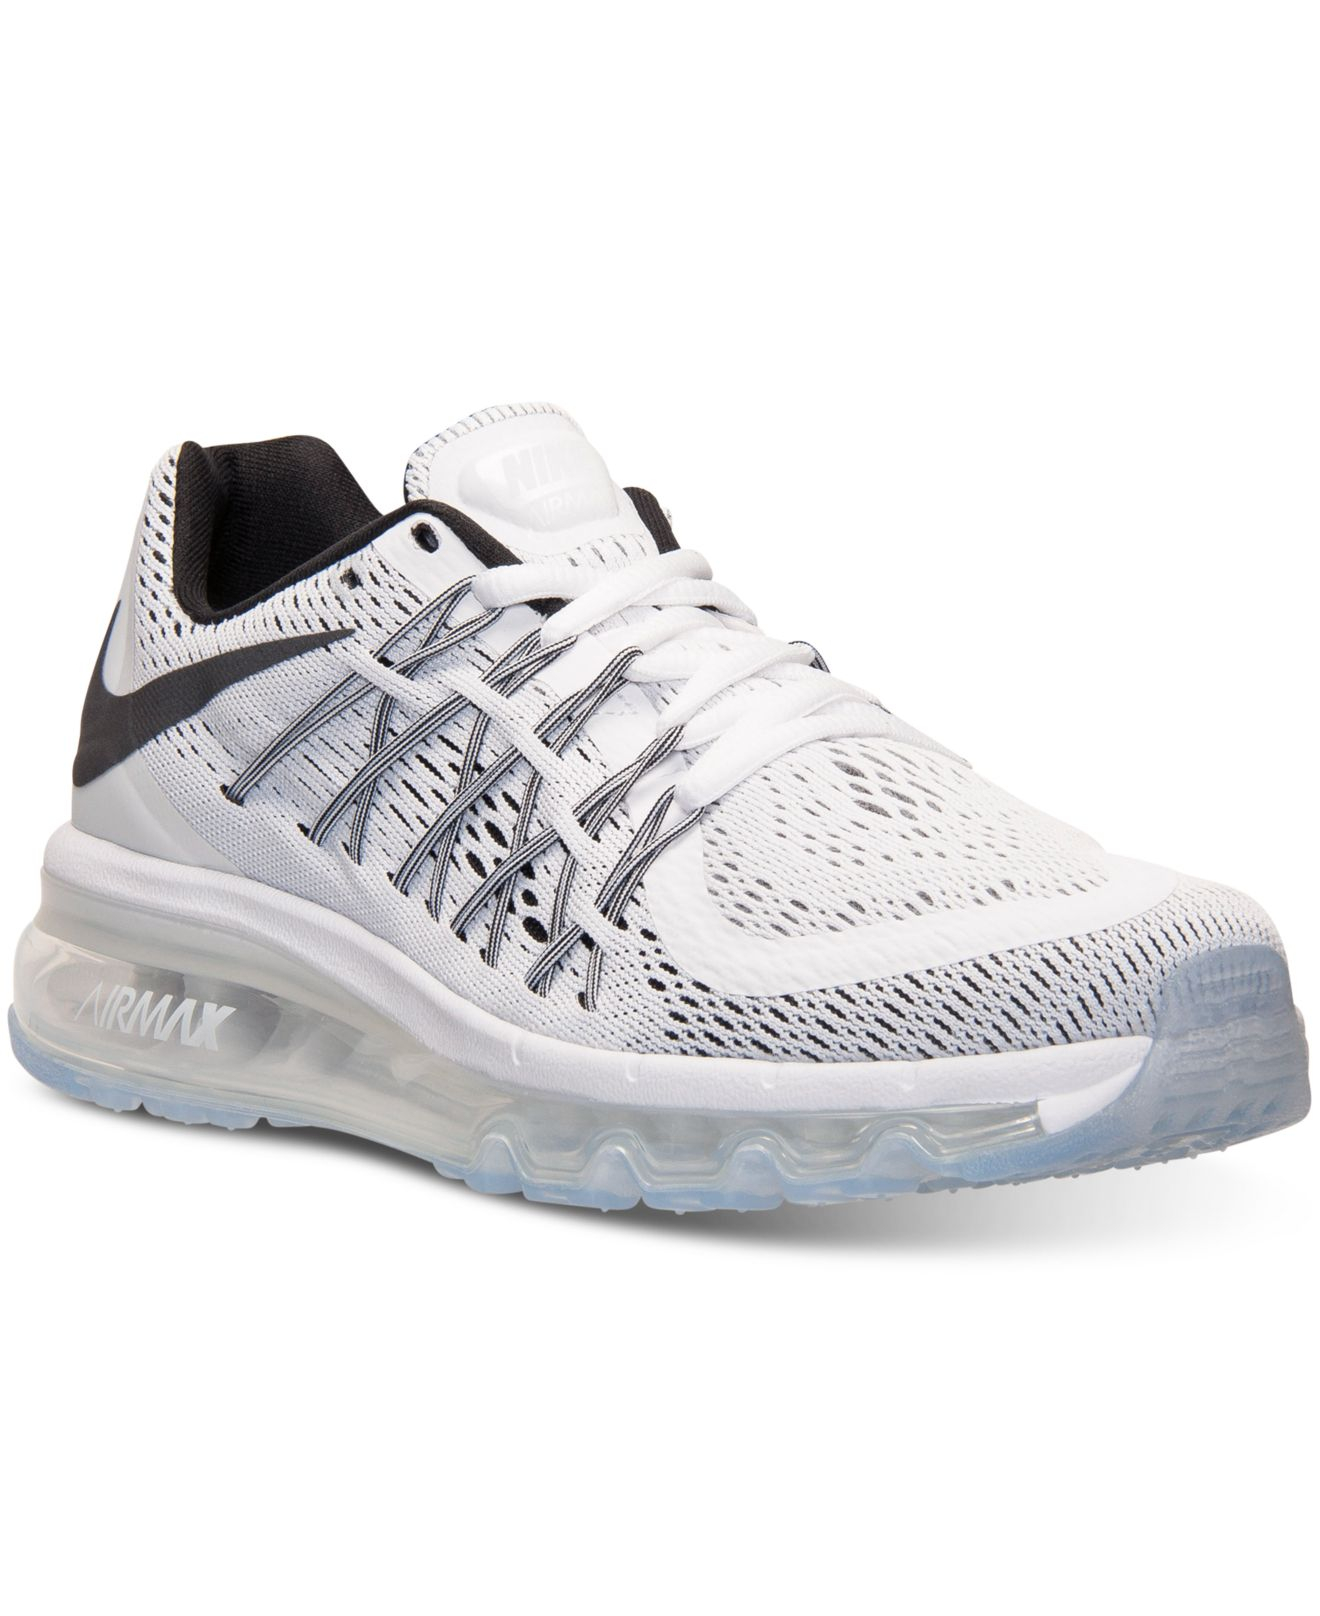 Lyst - Nike Women s Air Max 2015 Running Sneakers From Finish Line ... 8157bd4ce